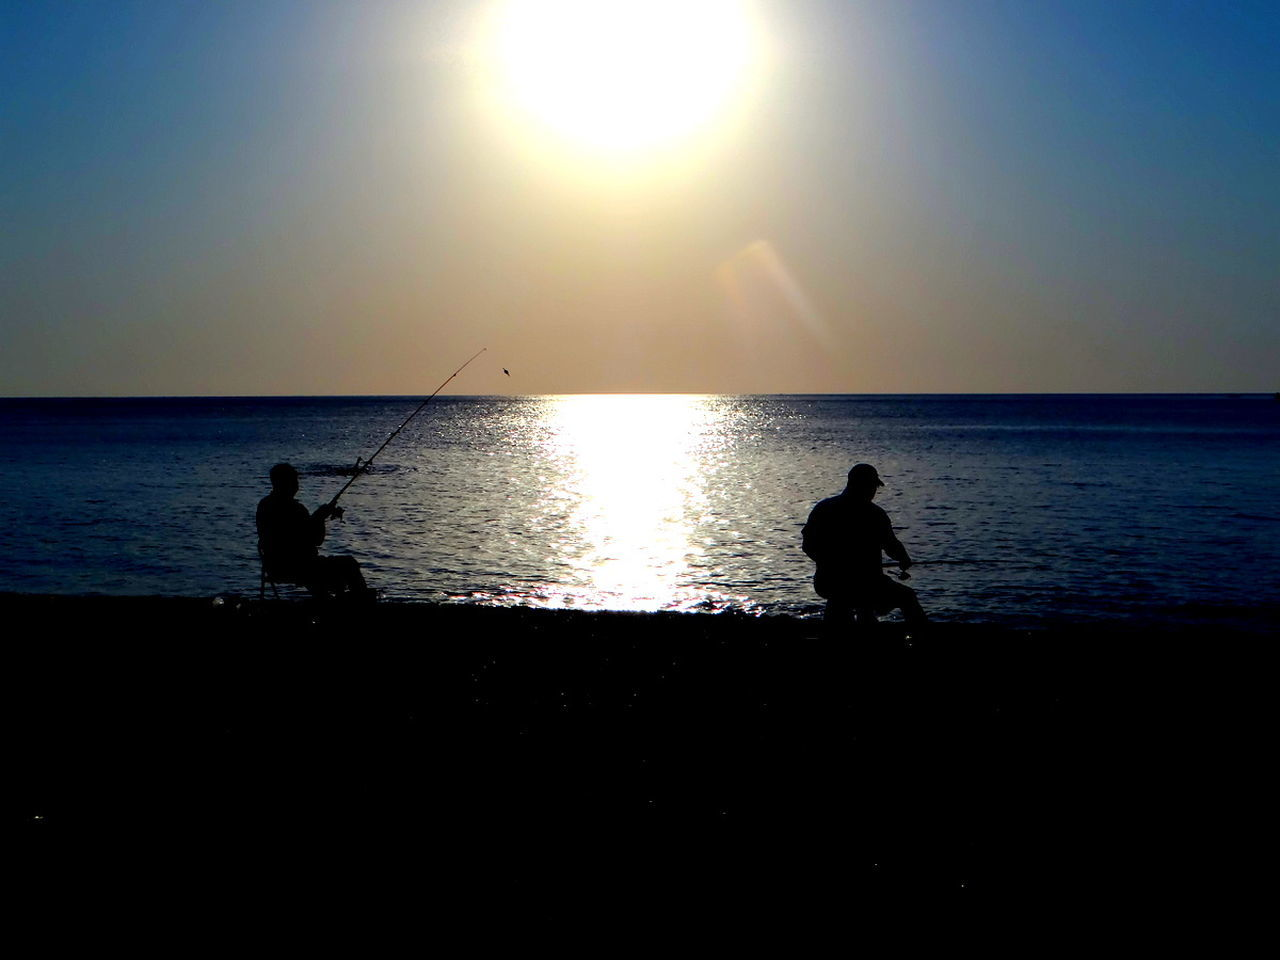 sea, silhouette, horizon over water, water, sun, fishing, nature, sunset, scenics, real people, two people, fishing pole, beauty in nature, tranquil scene, tranquility, clear sky, weekend activities, leisure activity, outdoors, standing, men, sunlight, sky, beach, day, people